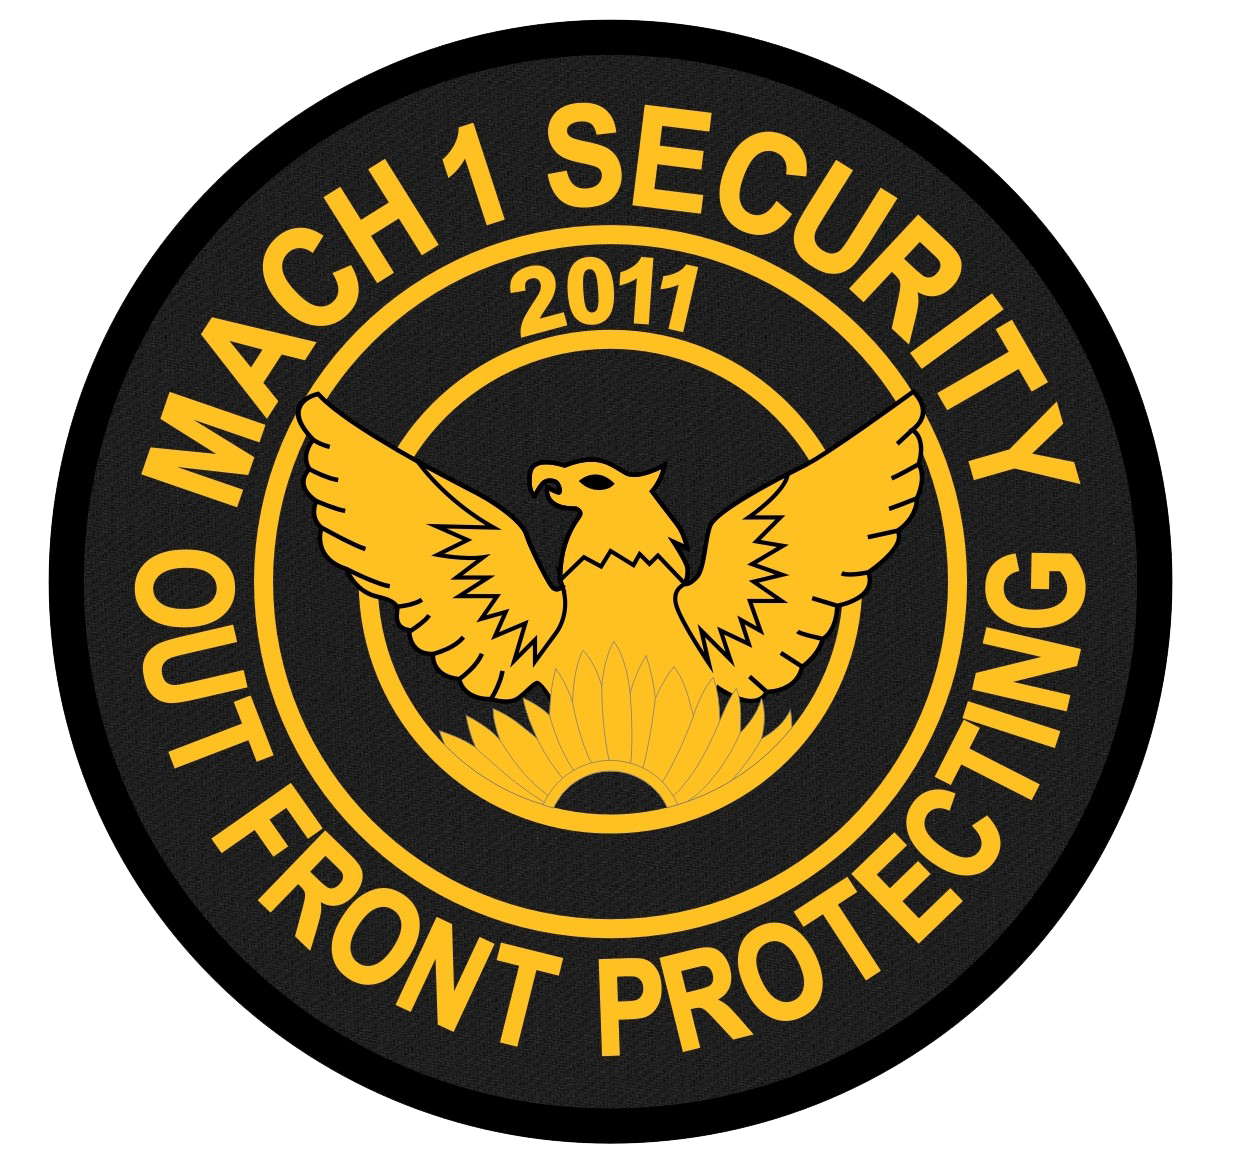 Mach1 Security